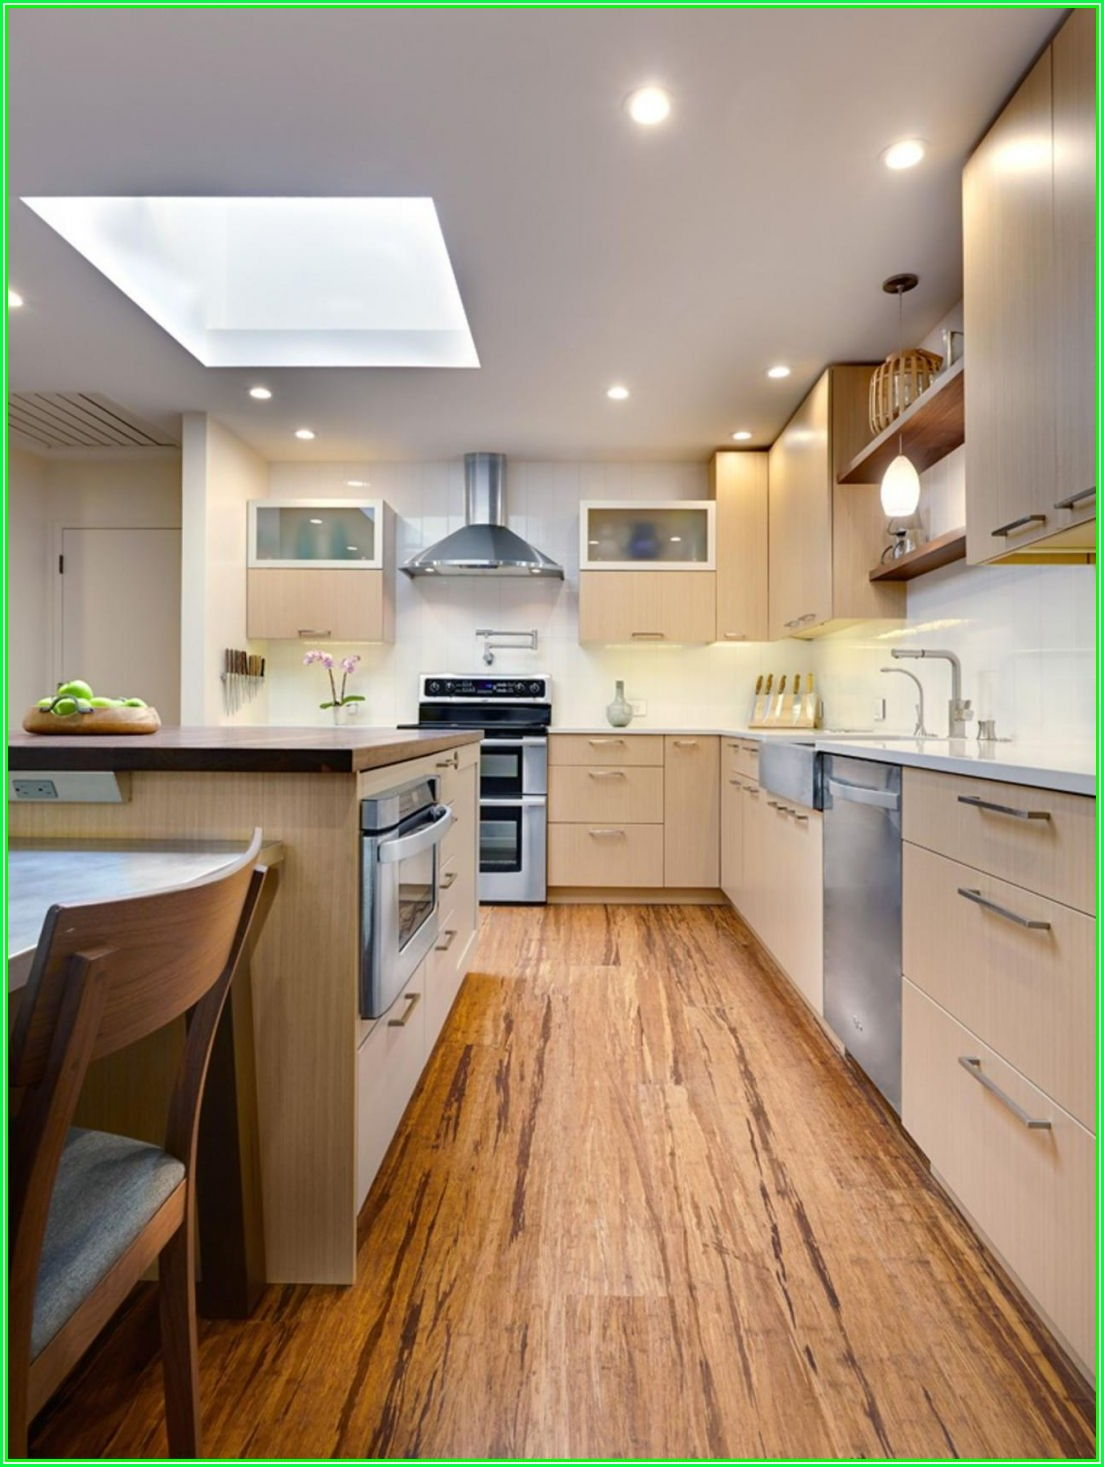 Is Bamboo Flooring A Good Choice For Kitchens